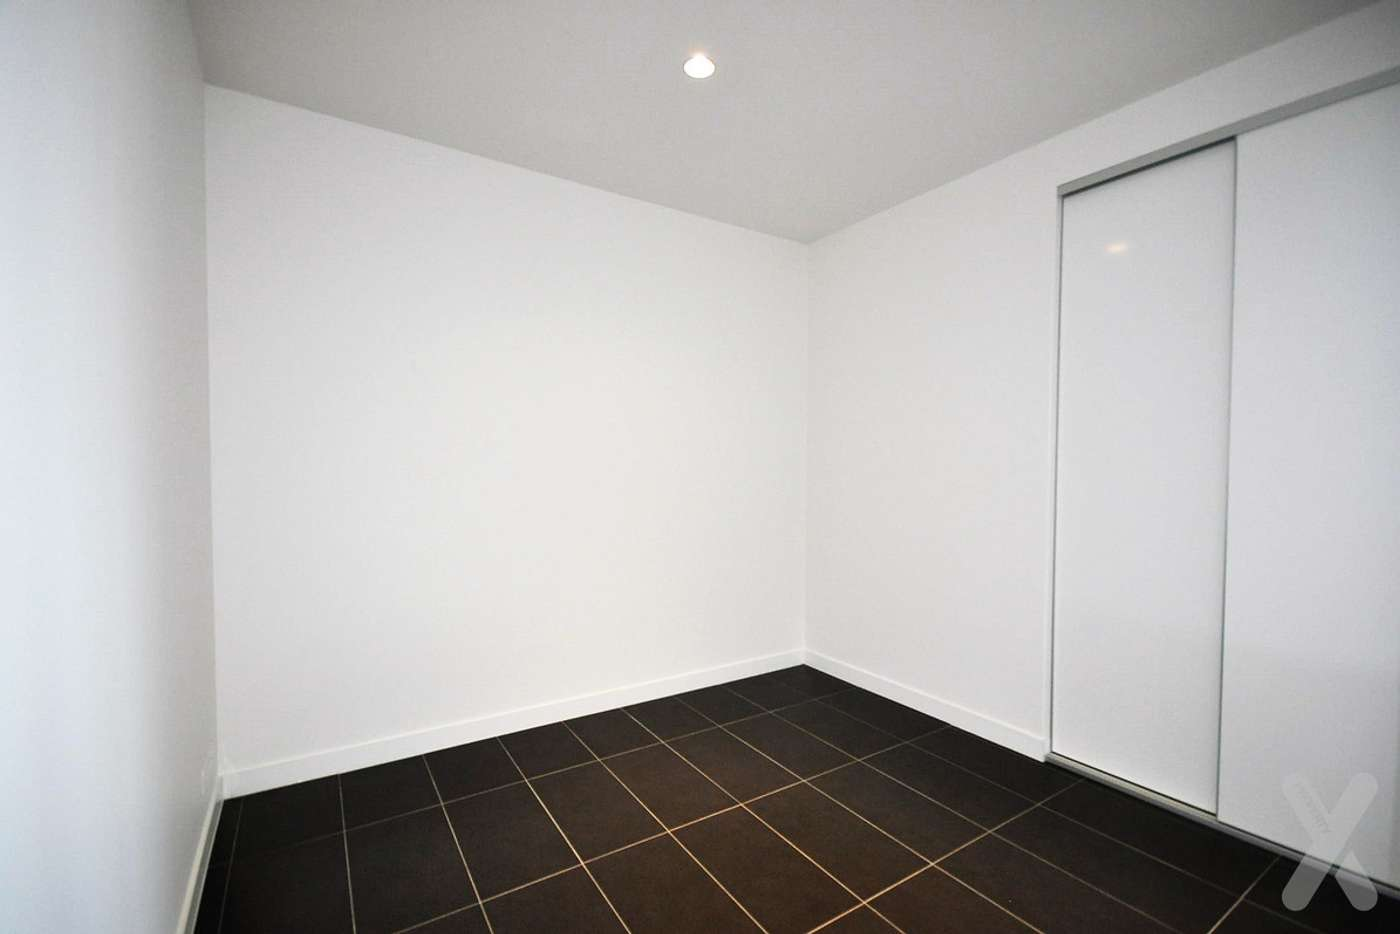 Seventh view of Homely apartment listing, 308/145 Roden Street, West Melbourne VIC 3003